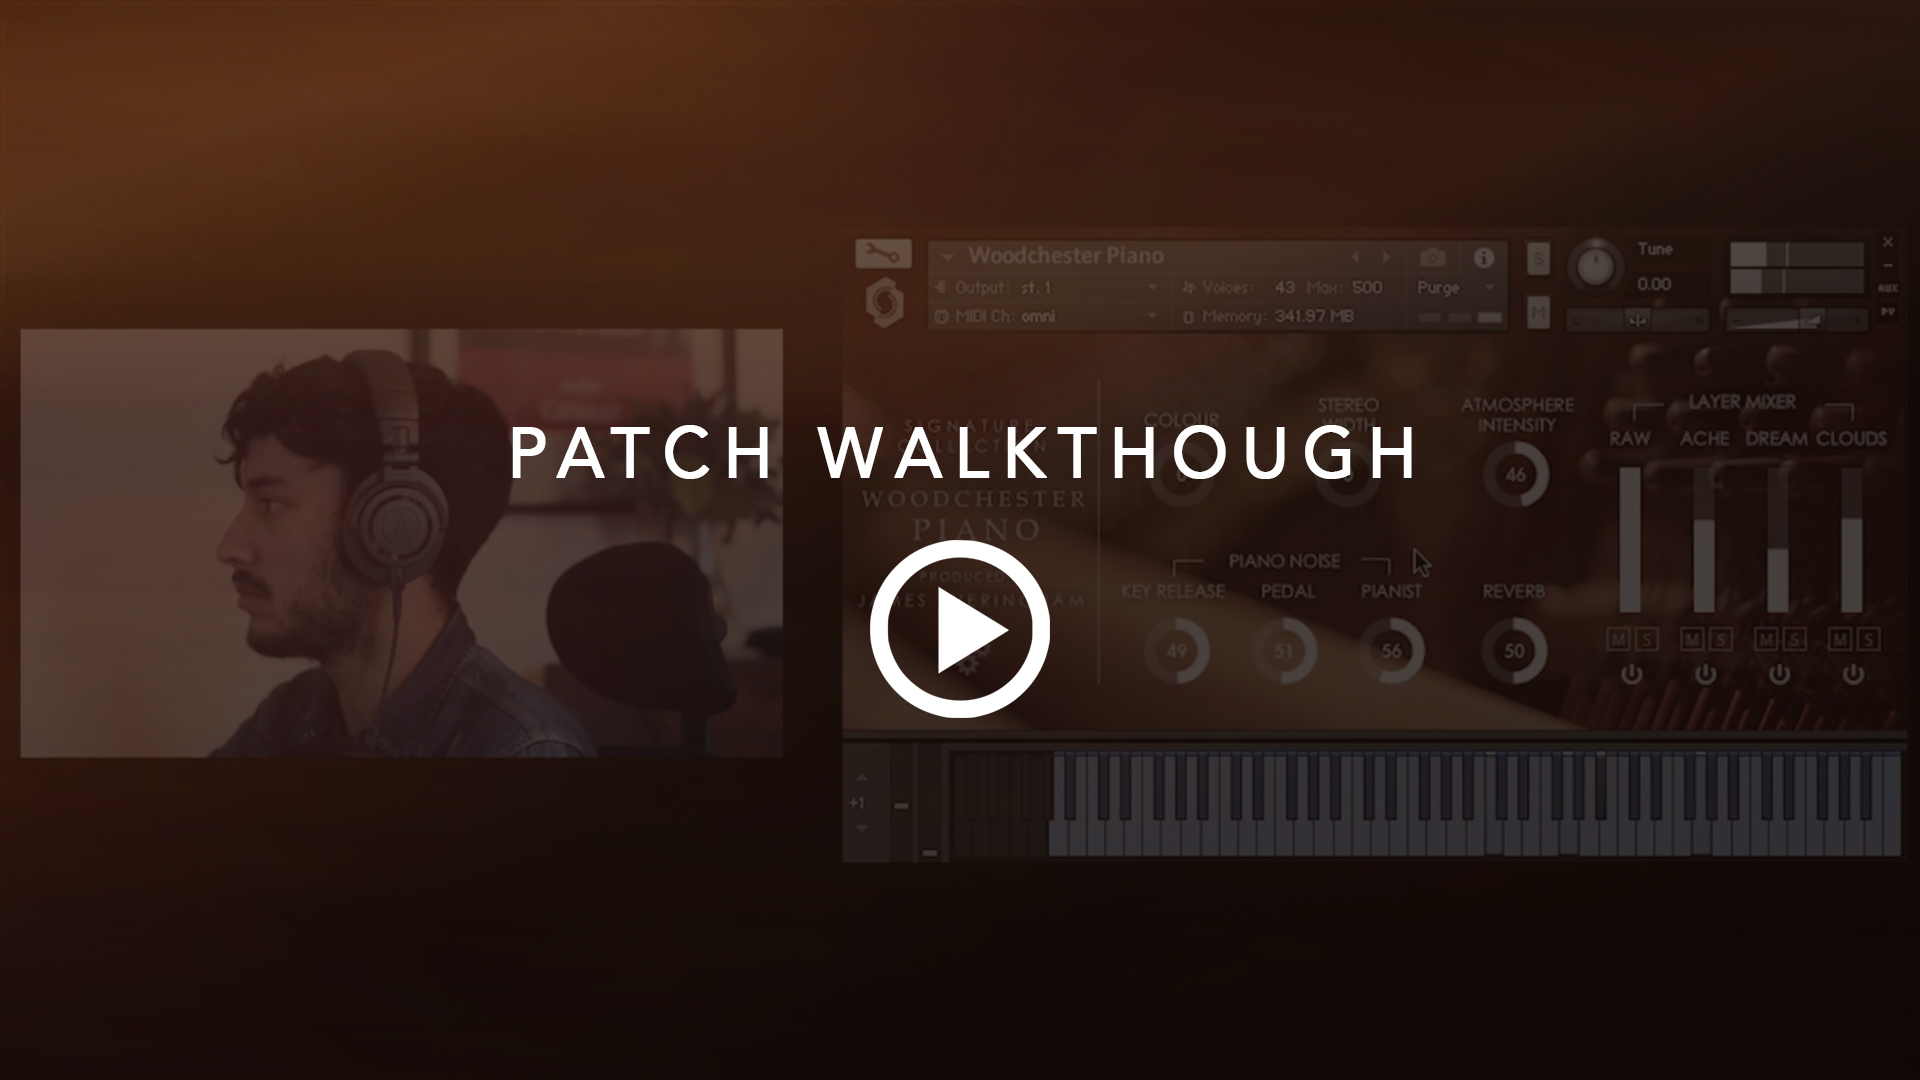 Patch Walkthrough